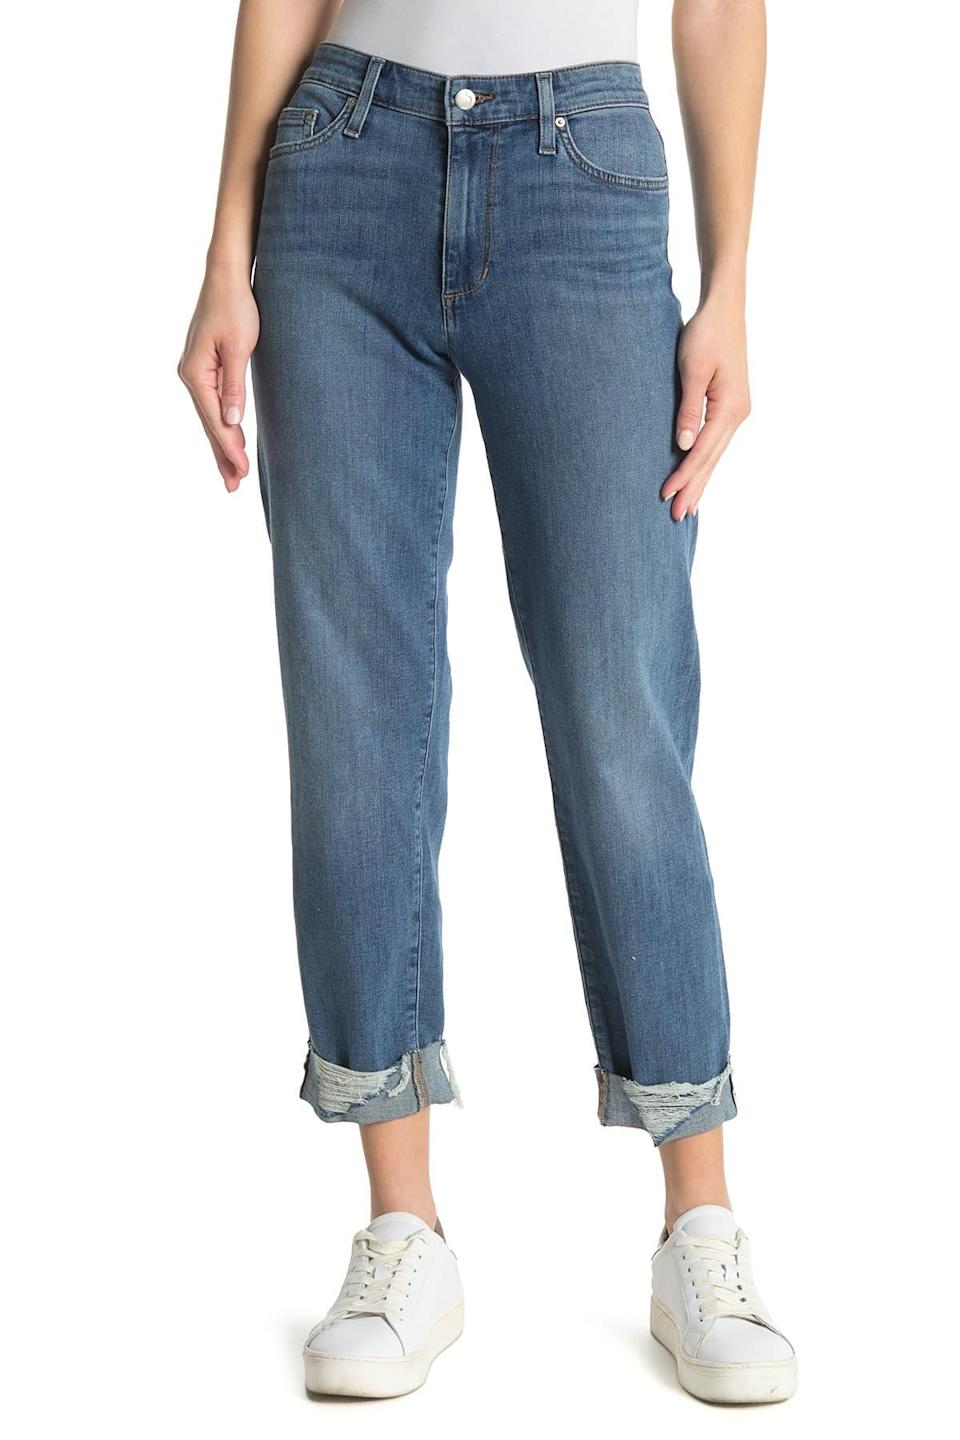 """<br><br><strong>Joe's Jeans</strong> Niki Cuffed Boyfriend Jeans, $, available at <a href=""""https://go.skimresources.com/?id=30283X879131&url=https%3A%2F%2Fwww.nordstromrack.com%2Fs%2Fjoes-jeans-niki-cuffed-boyfriend-jeans%2Fn3529599"""" rel=""""nofollow noopener"""" target=""""_blank"""" data-ylk=""""slk:Nordstrom Rack"""" class=""""link rapid-noclick-resp"""">Nordstrom Rack</a>"""